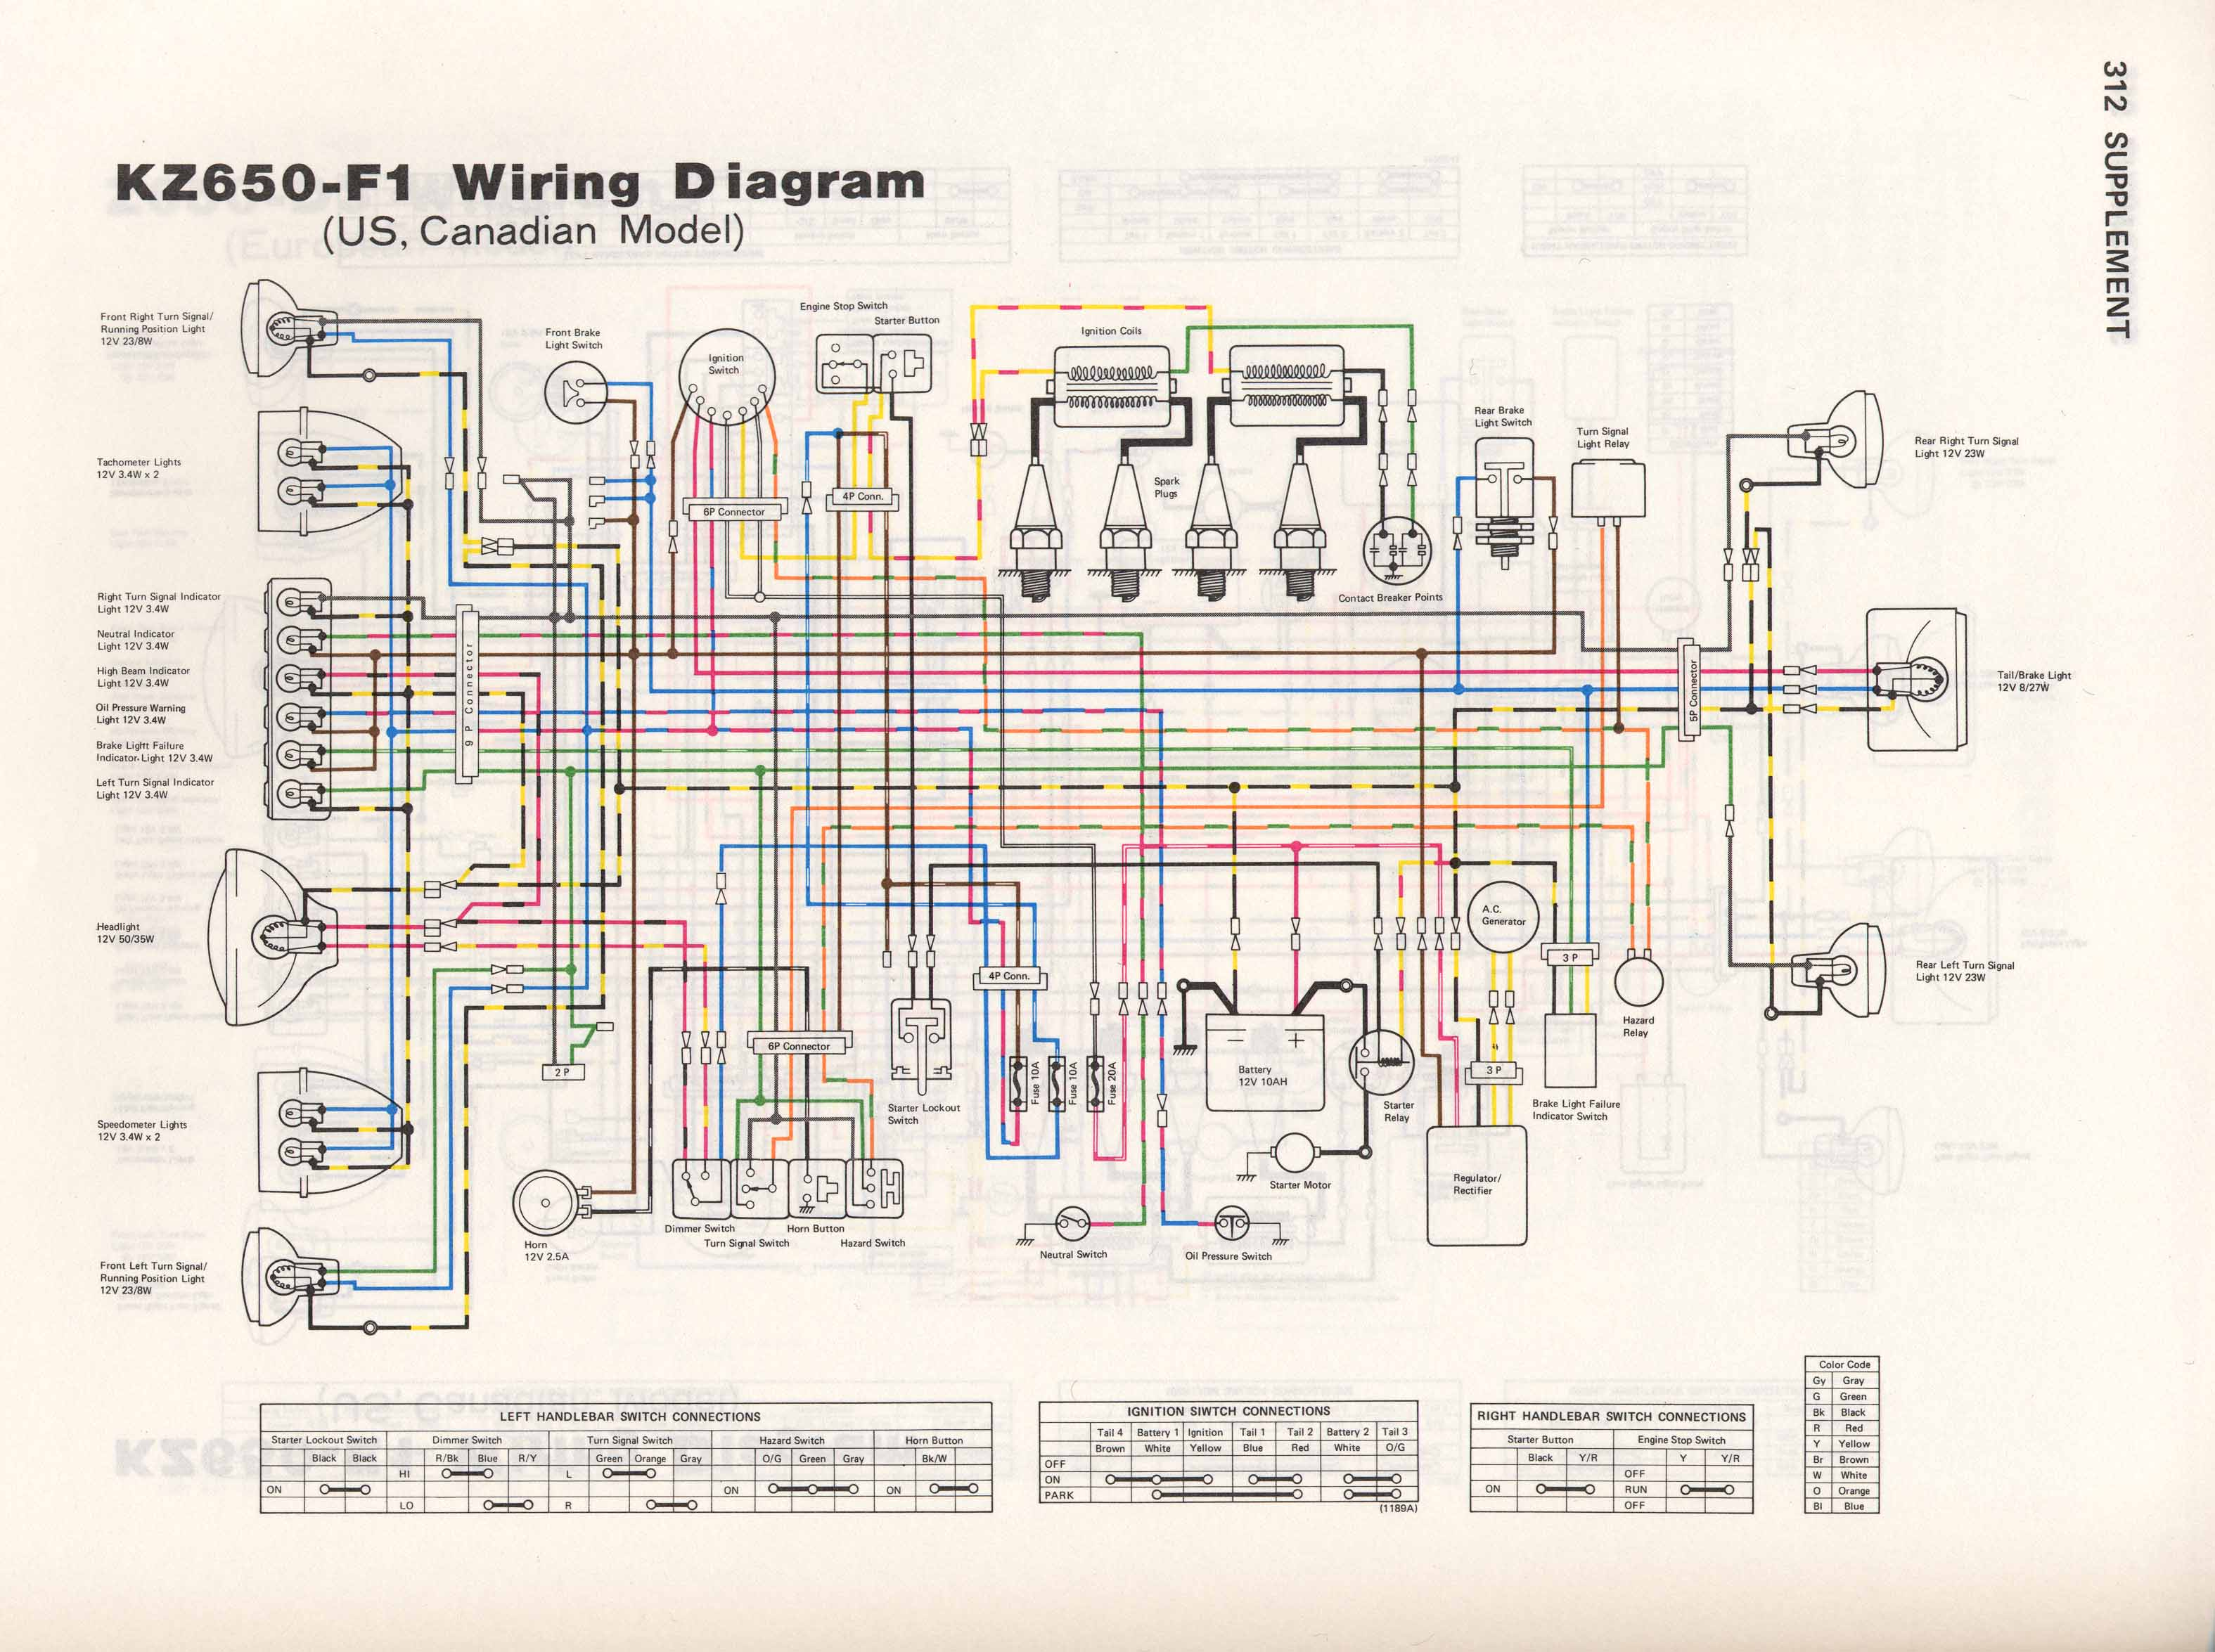 KZ650 F1 kz650 info wiring diagrams kawasaki wiring diagram at gsmx.co